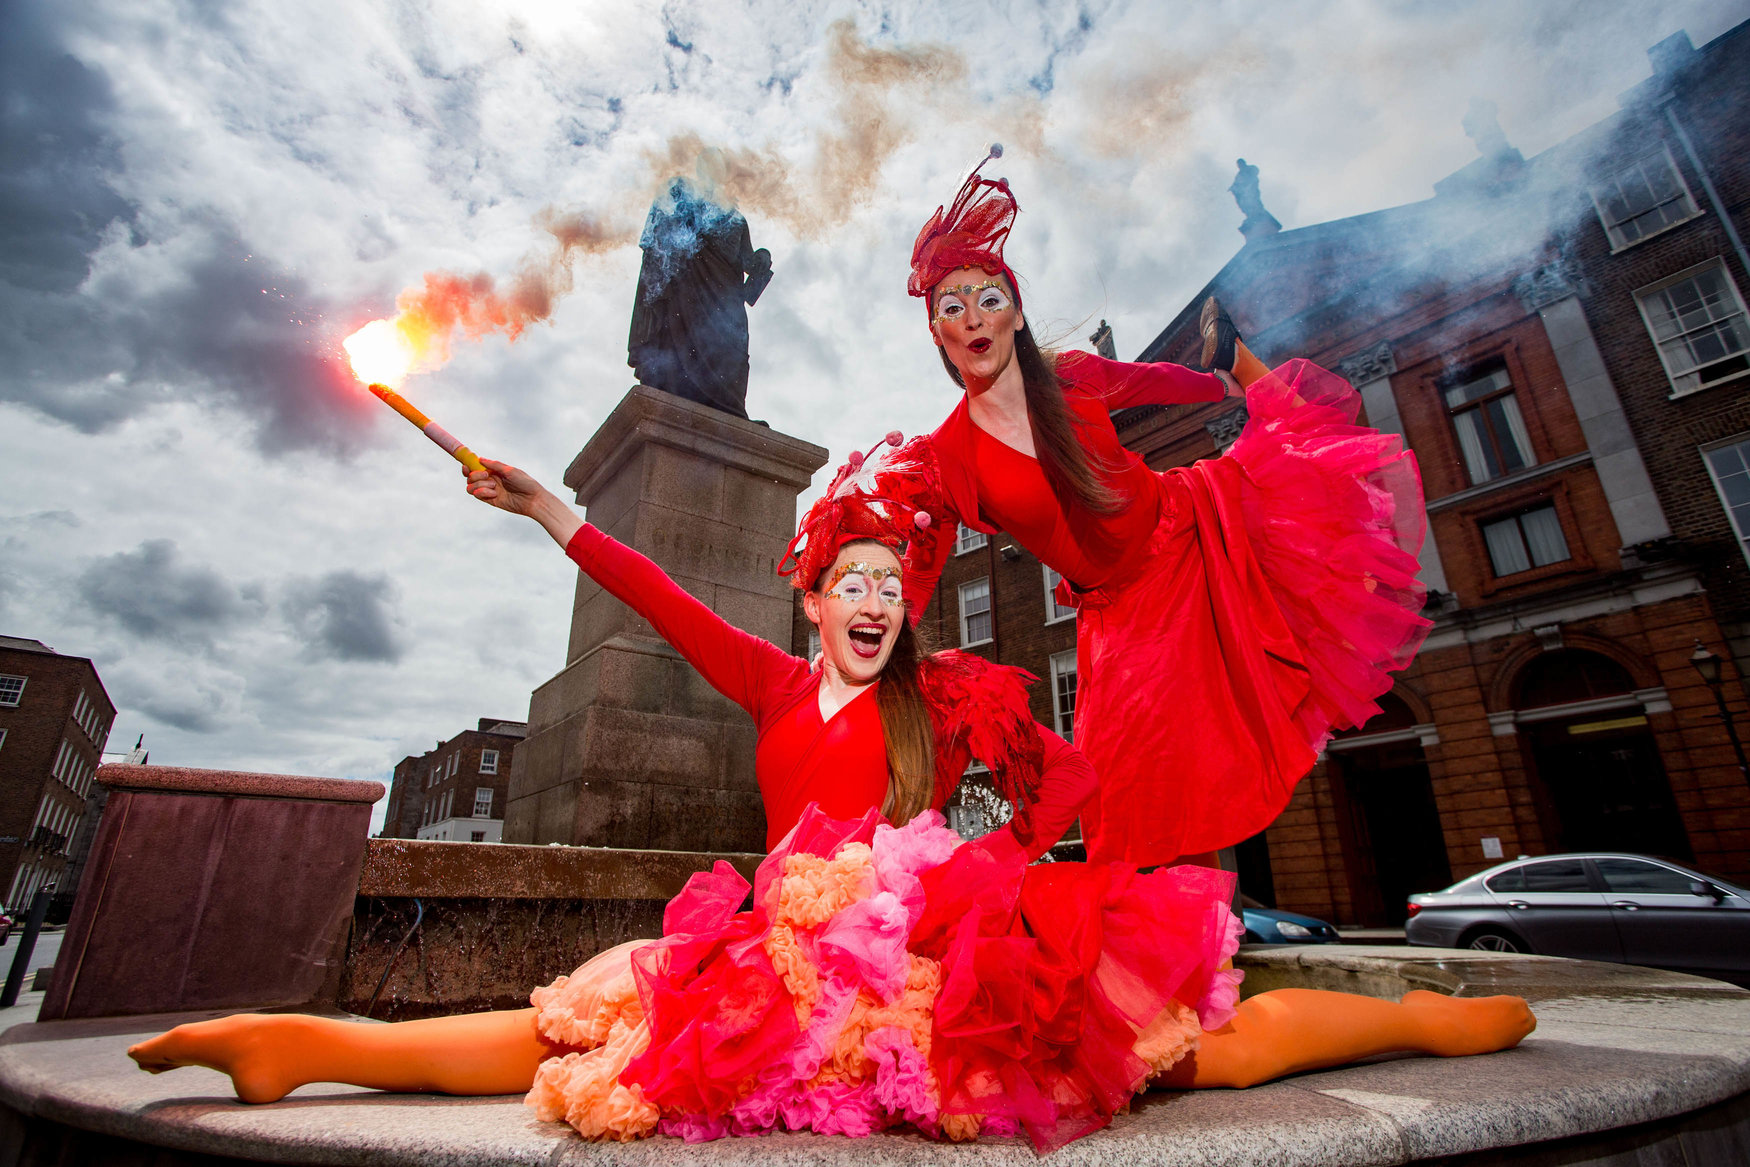 Capital of Culture Limerick 2020 bid Limerick Arts Organisations receive almost €1 million